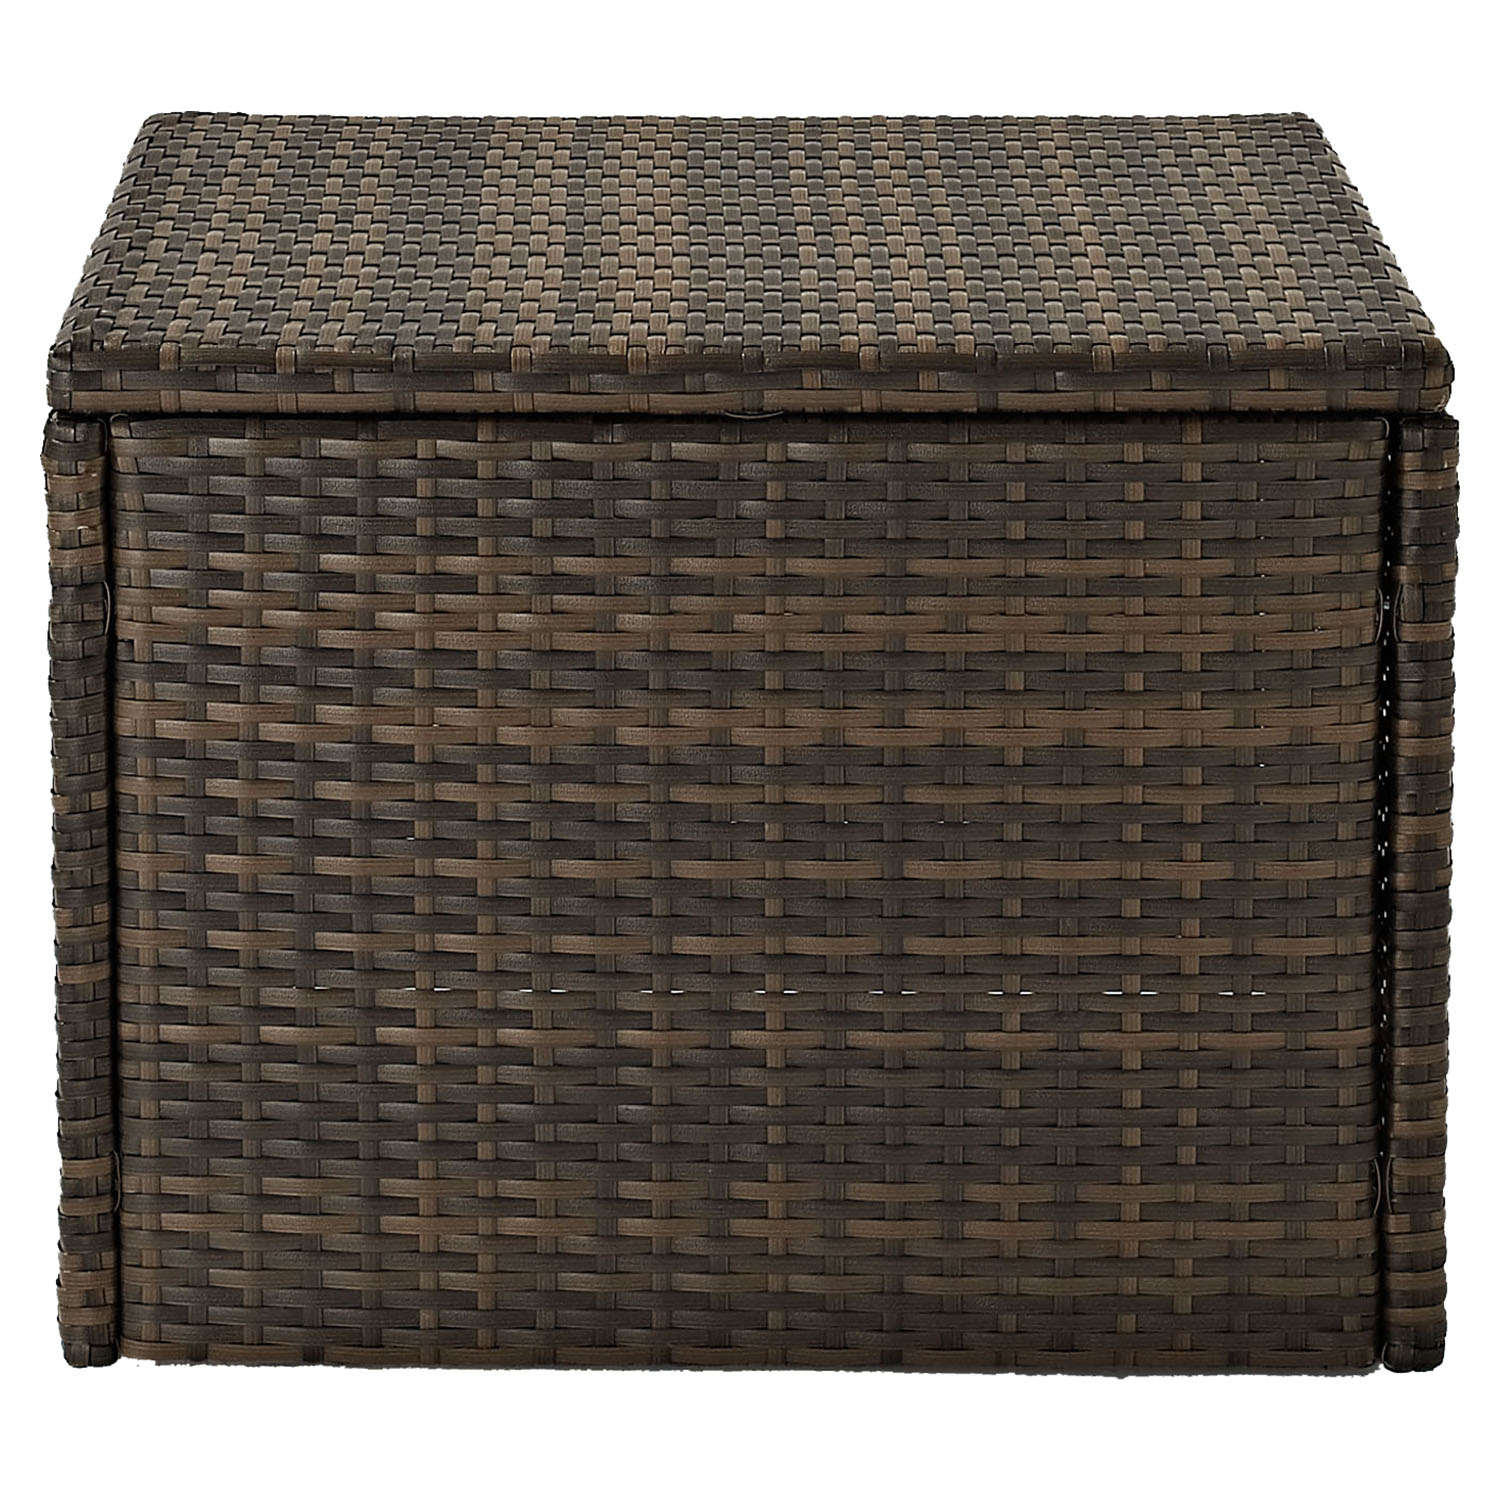 Palm Harbor Outdoor Wicker Coffee Table - Dark Brown